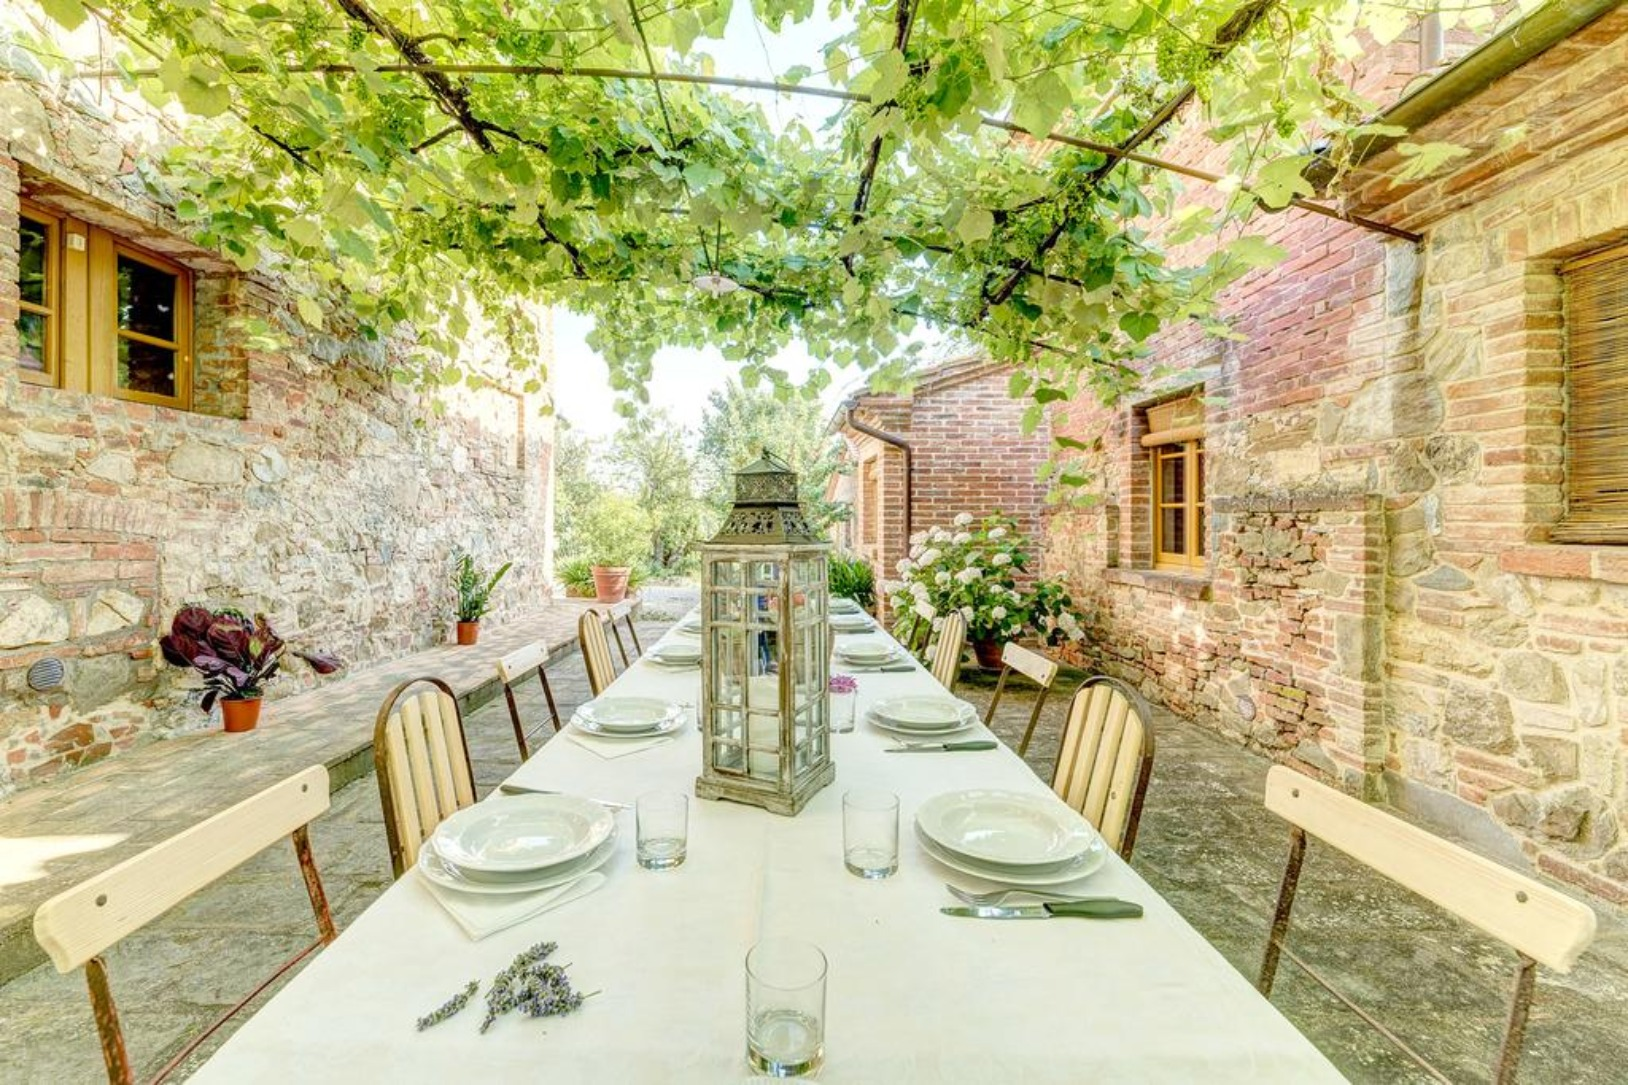 A dining table in front of a brick building at Agriturismo Menchetti.